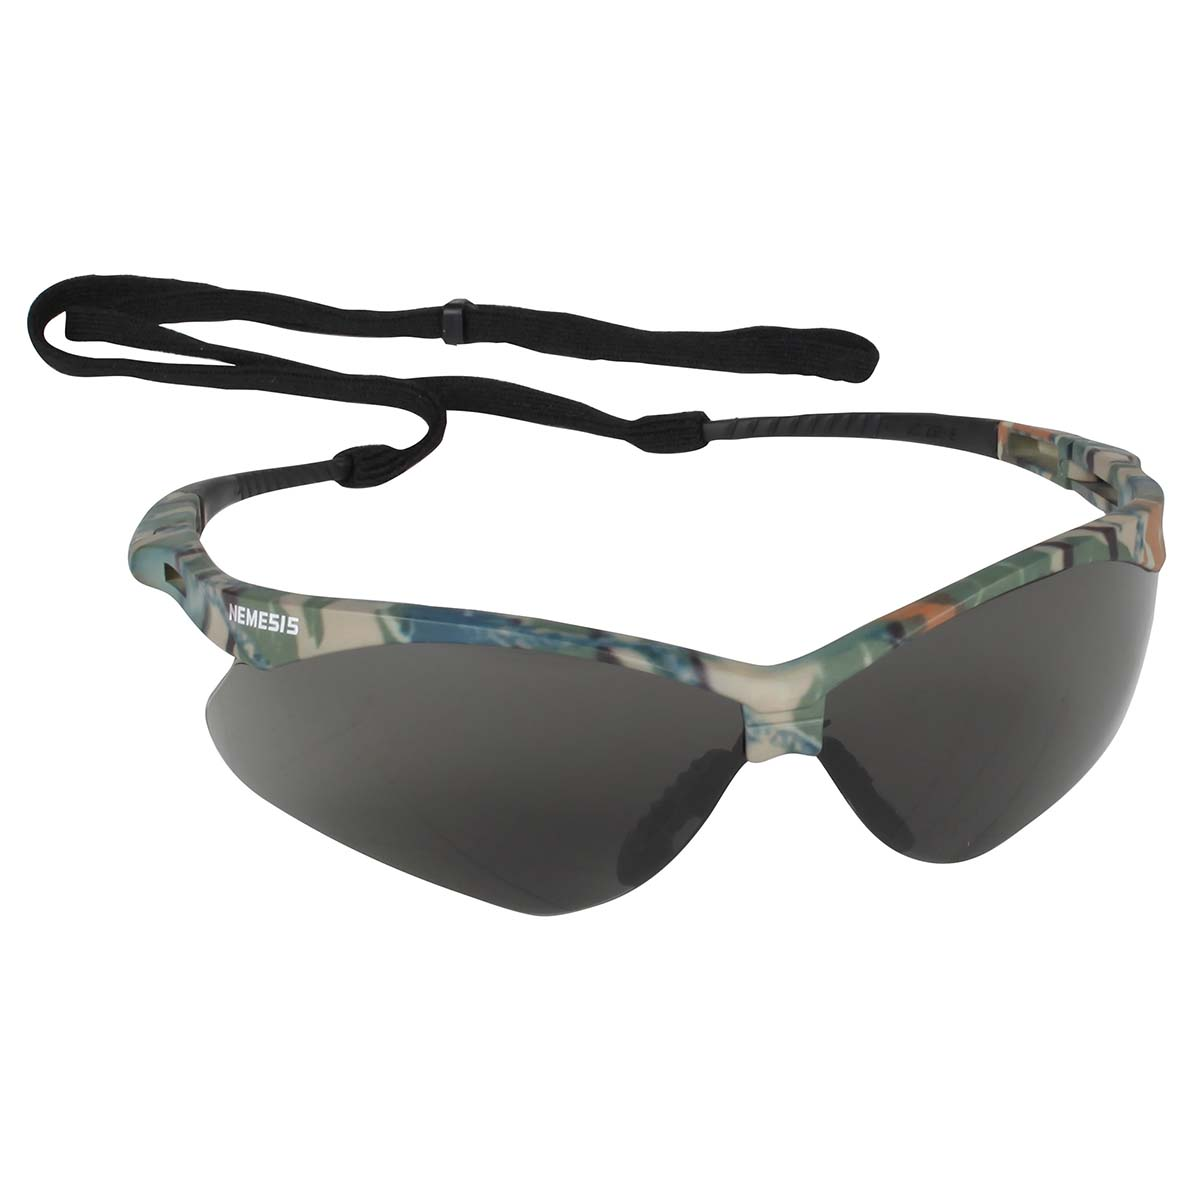 Jackson Safety V30 Nemesis Safety Glasses (22609), Smoke Anti-Fog Lens, Camo Frame, 12 Pairs / Case